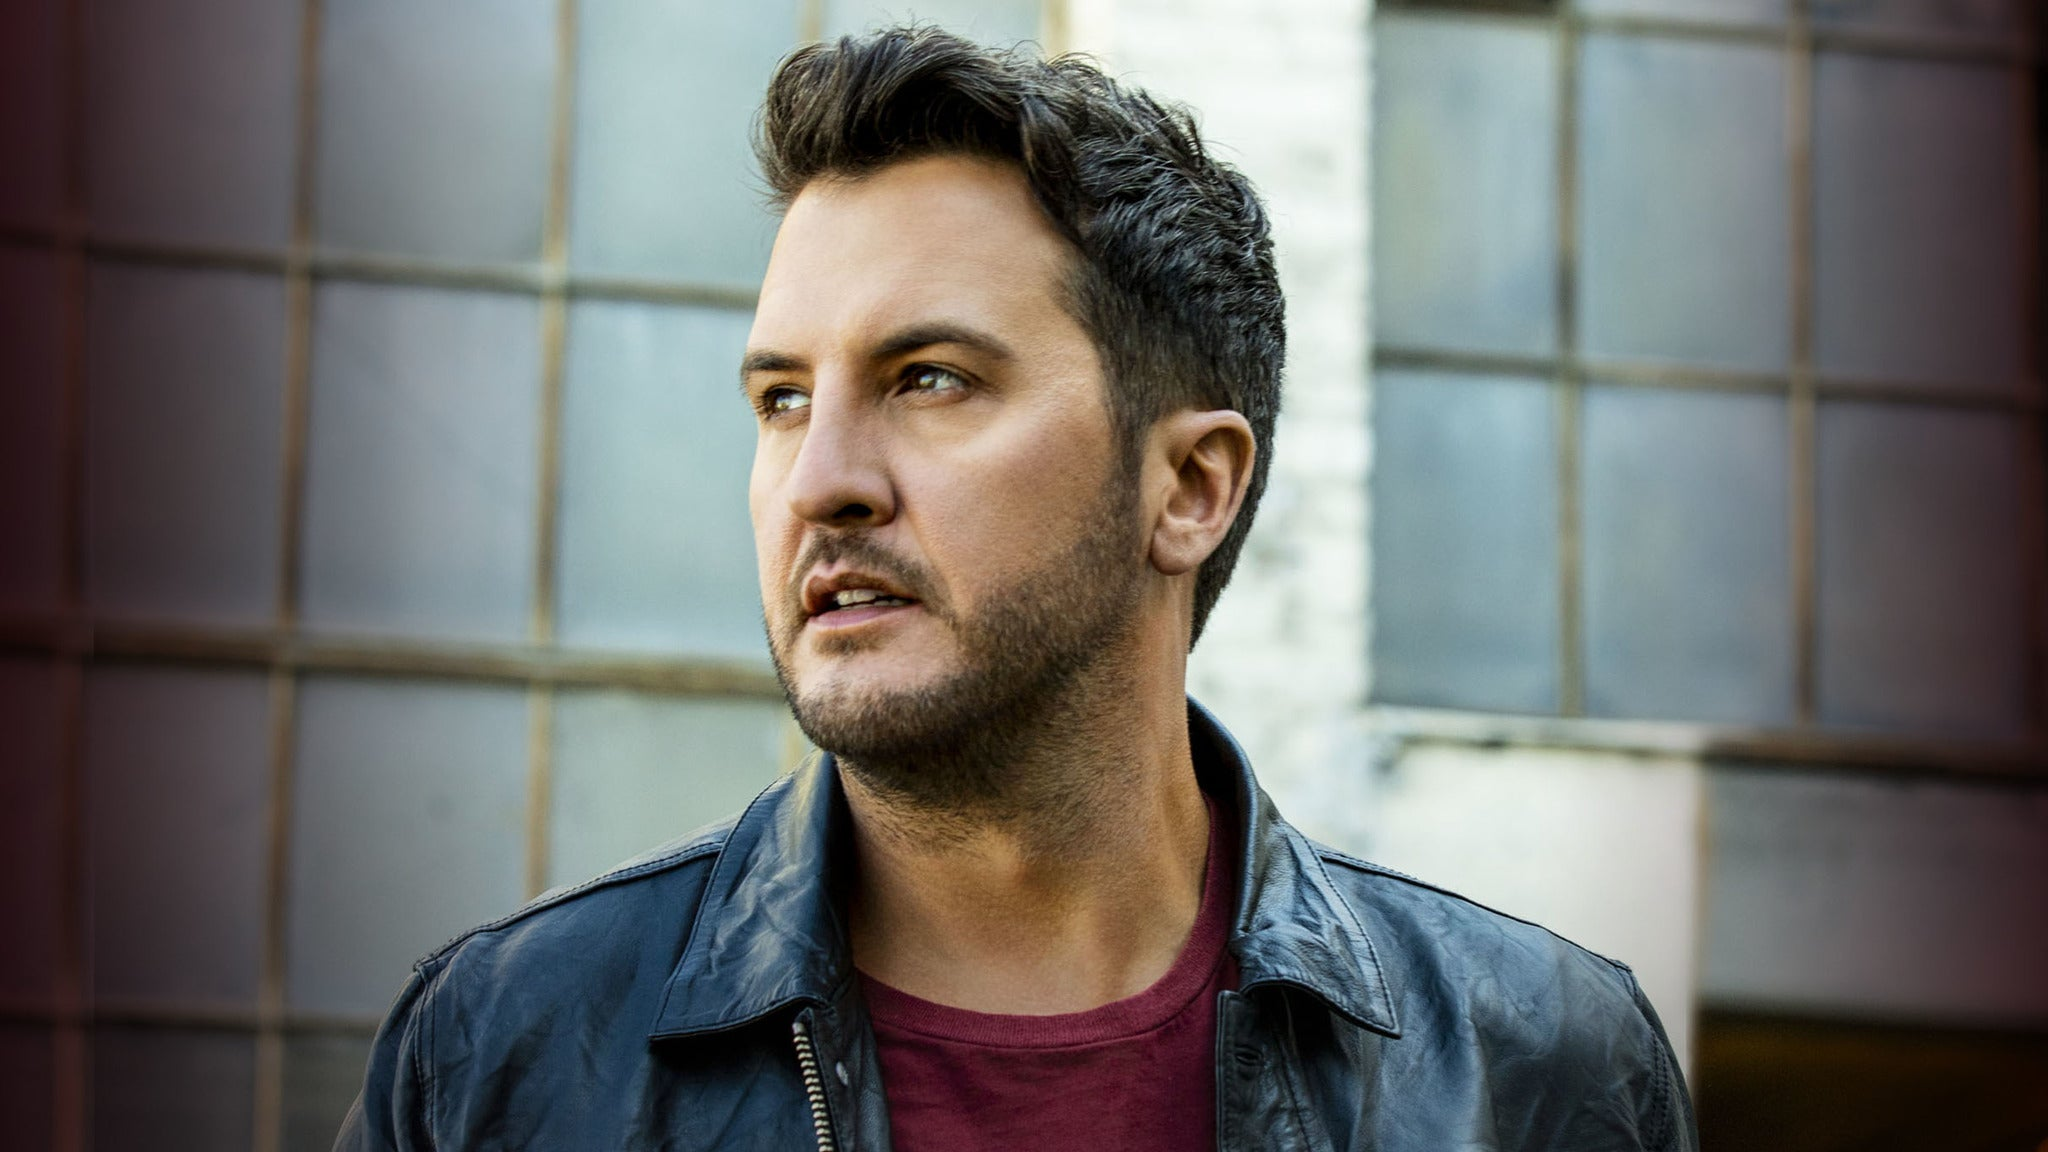 Luke Bryan: Proud To Be Right Here 2020